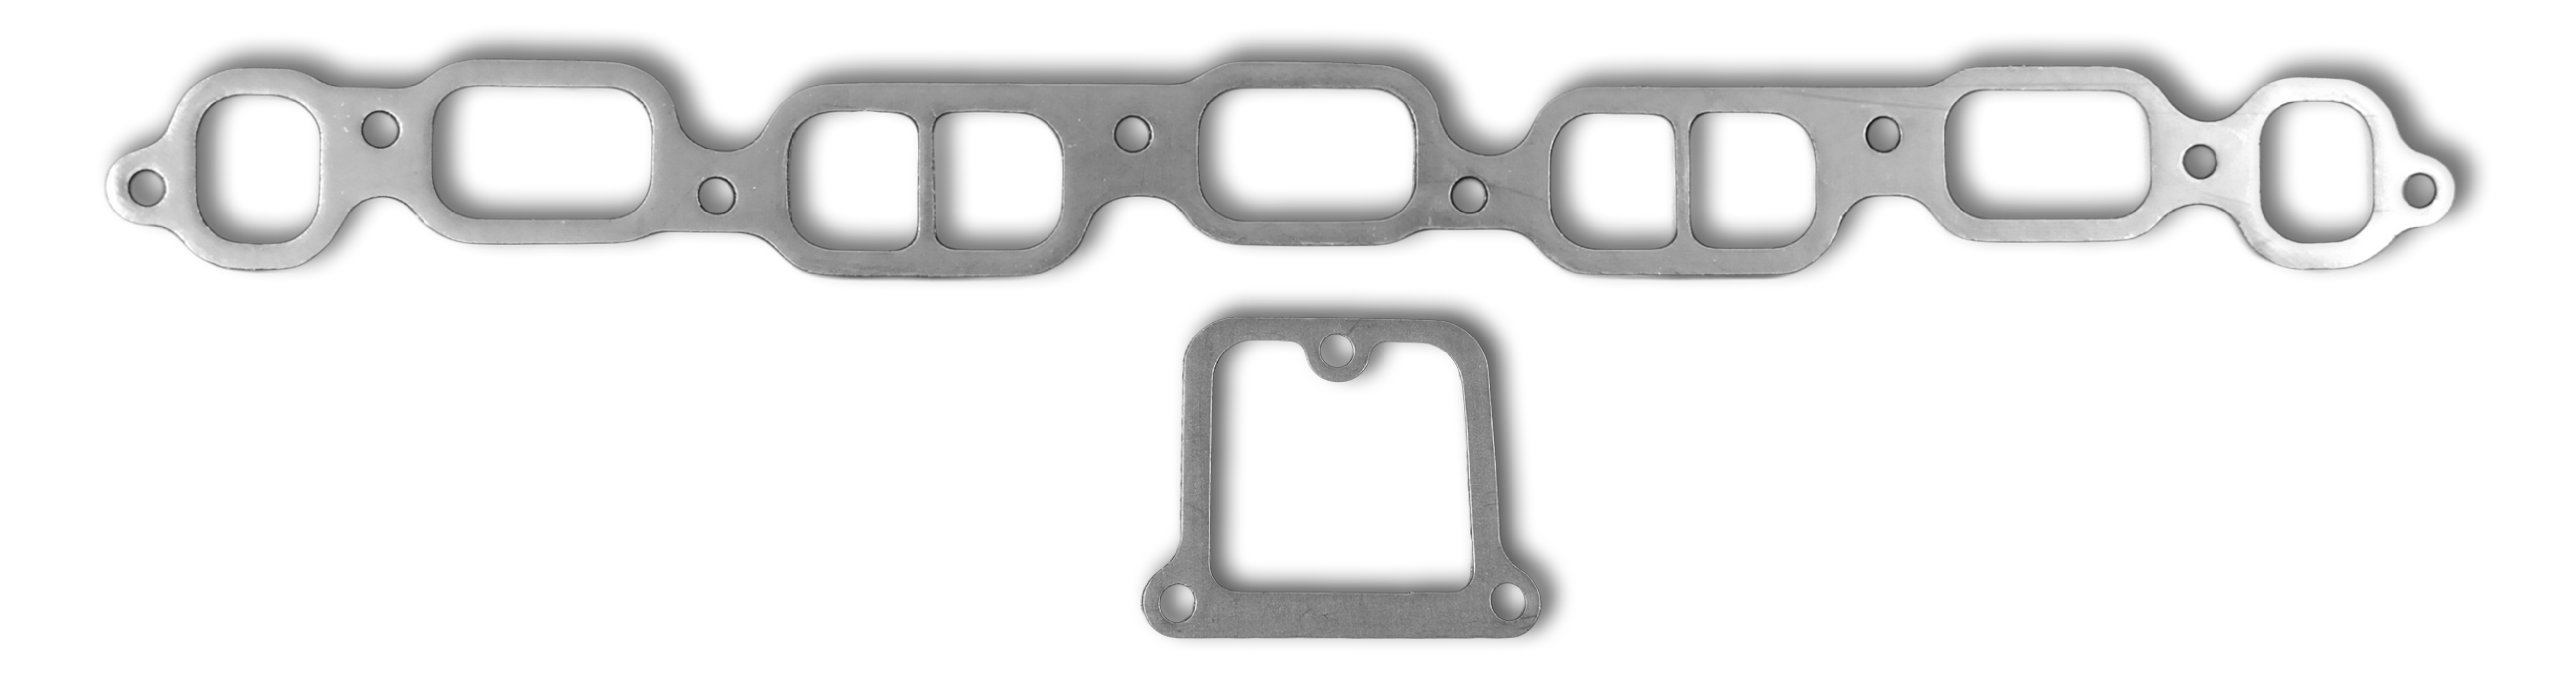 Remflex 2034 Exhaust Gasket for Chevy L6 Engine, (Set of 2)